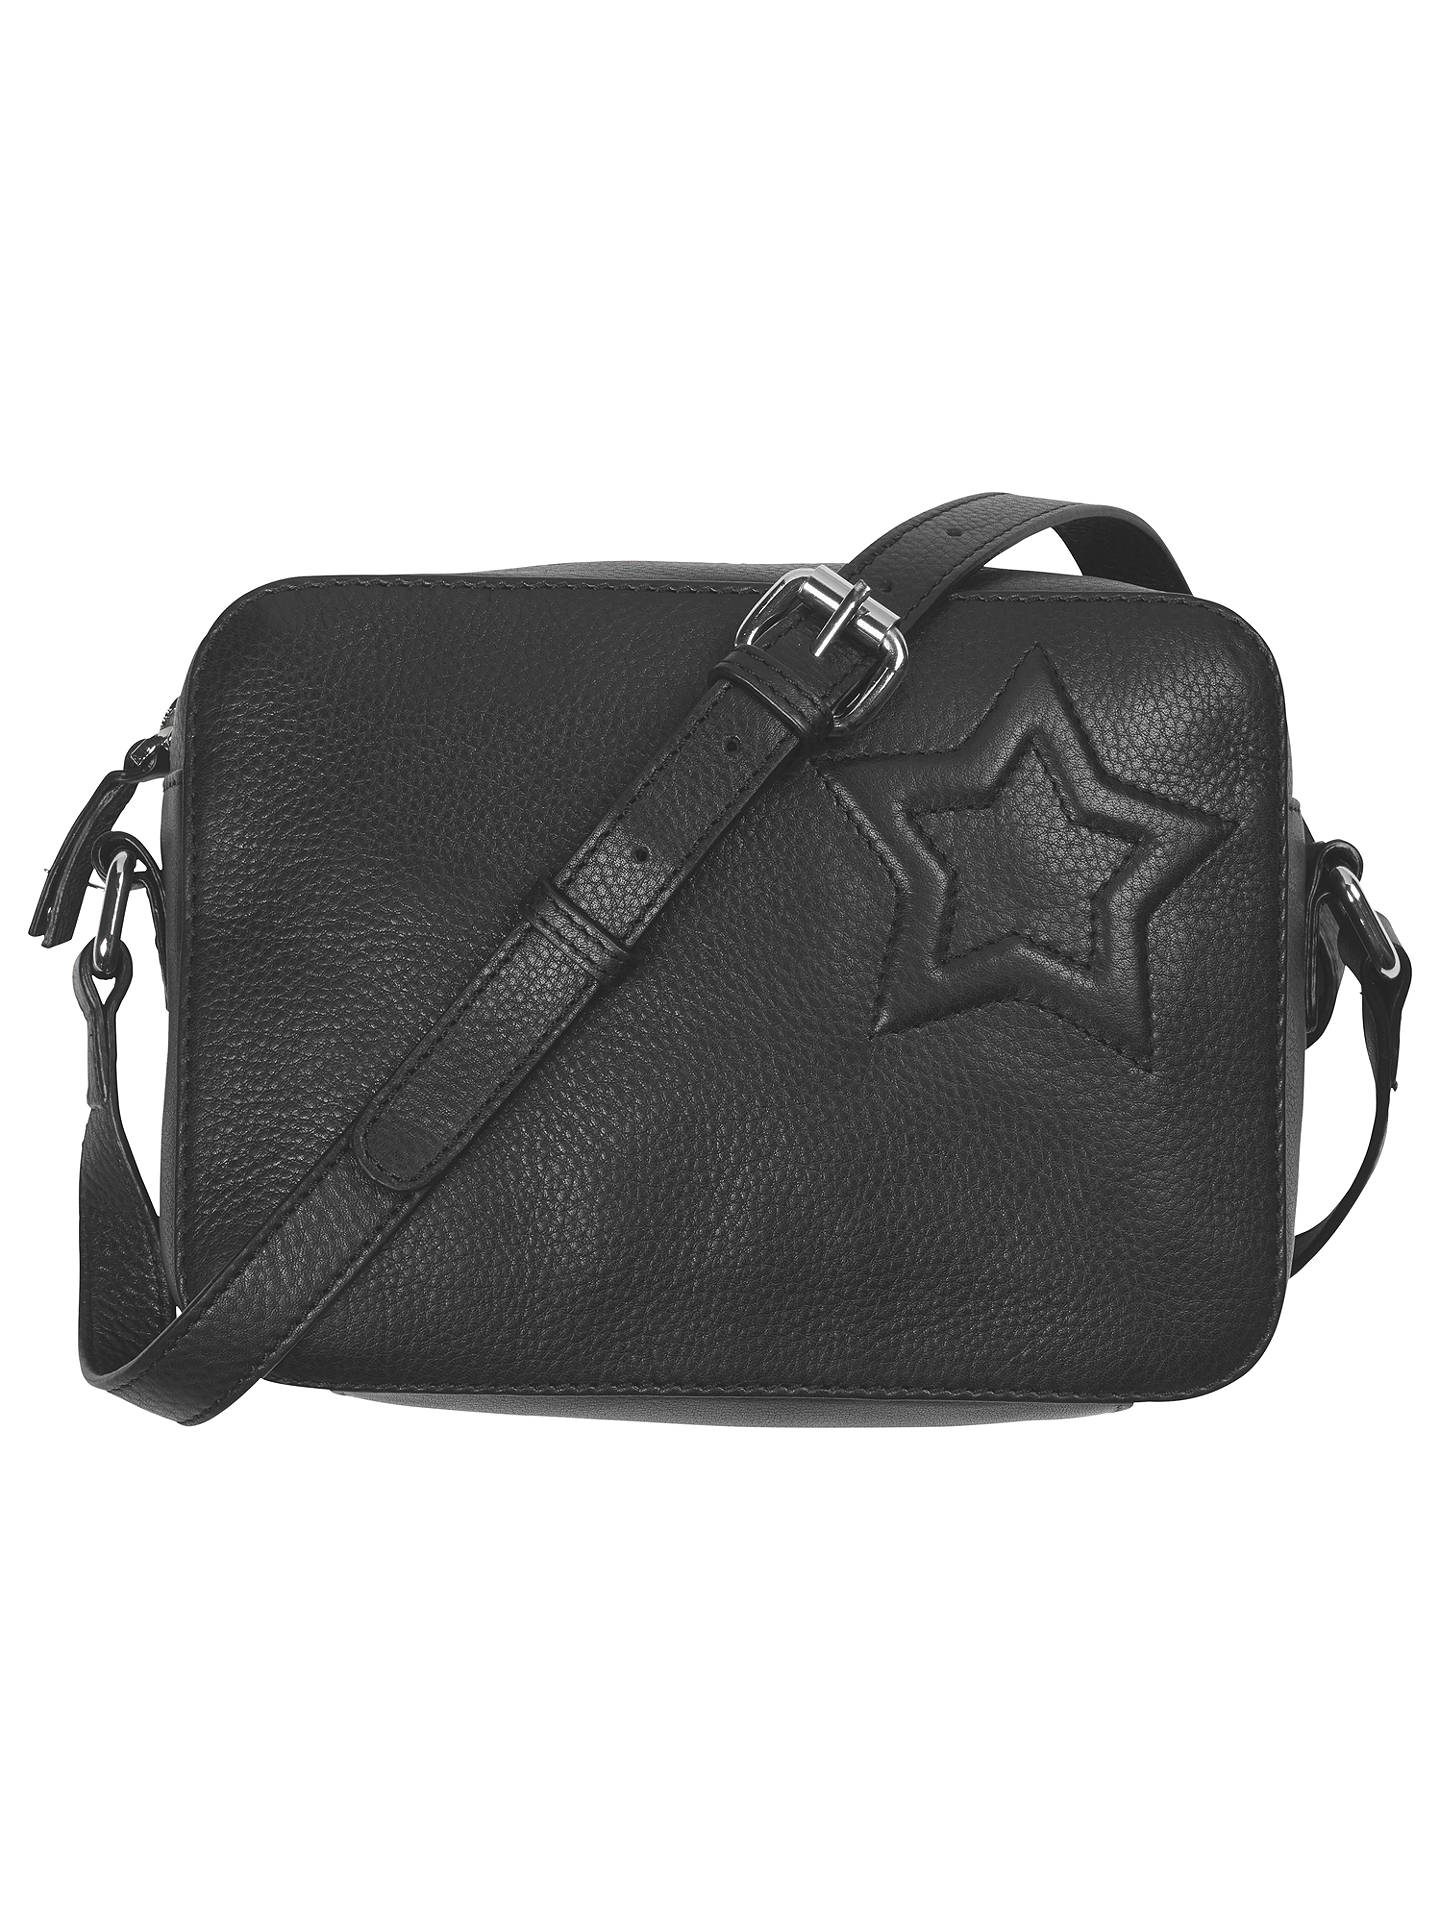 Hush Fifi Handbag Black Online At Johnlewis